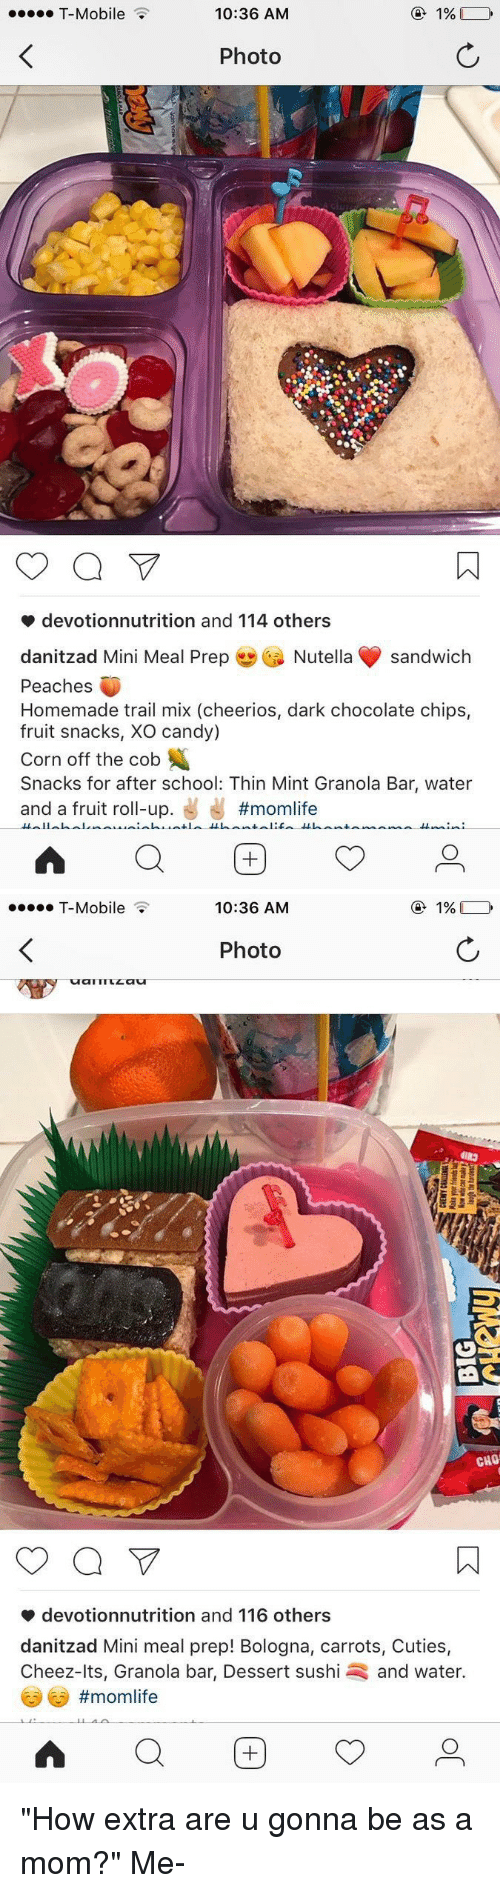 """dark chocolate: T-Mobile  1%  10:36 AM  Photo  a  devotionnutrition and 114 others  danitzad Mini Meal Prep  Nutella sandwich  Peaches  Homemade trail mix (cheerios, dark chocolate chips,  fruit snacks, XO candy)  Corn off the cob  Snacks for after school: Thin Mint Granola Bar, water  and a fruit roll-up.  #momlife   1%,  10:36 AM  T-Mobile  Photo  CITTILLa  CHO'  a  devotionnutrition and 116 others  danitzad Mini meal prep! Bologna, carrots, Cuties,  Cheez-lts, Granola bar, Dessert sushi and water  """"How extra are u gonna be as a mom?"""" Me-"""